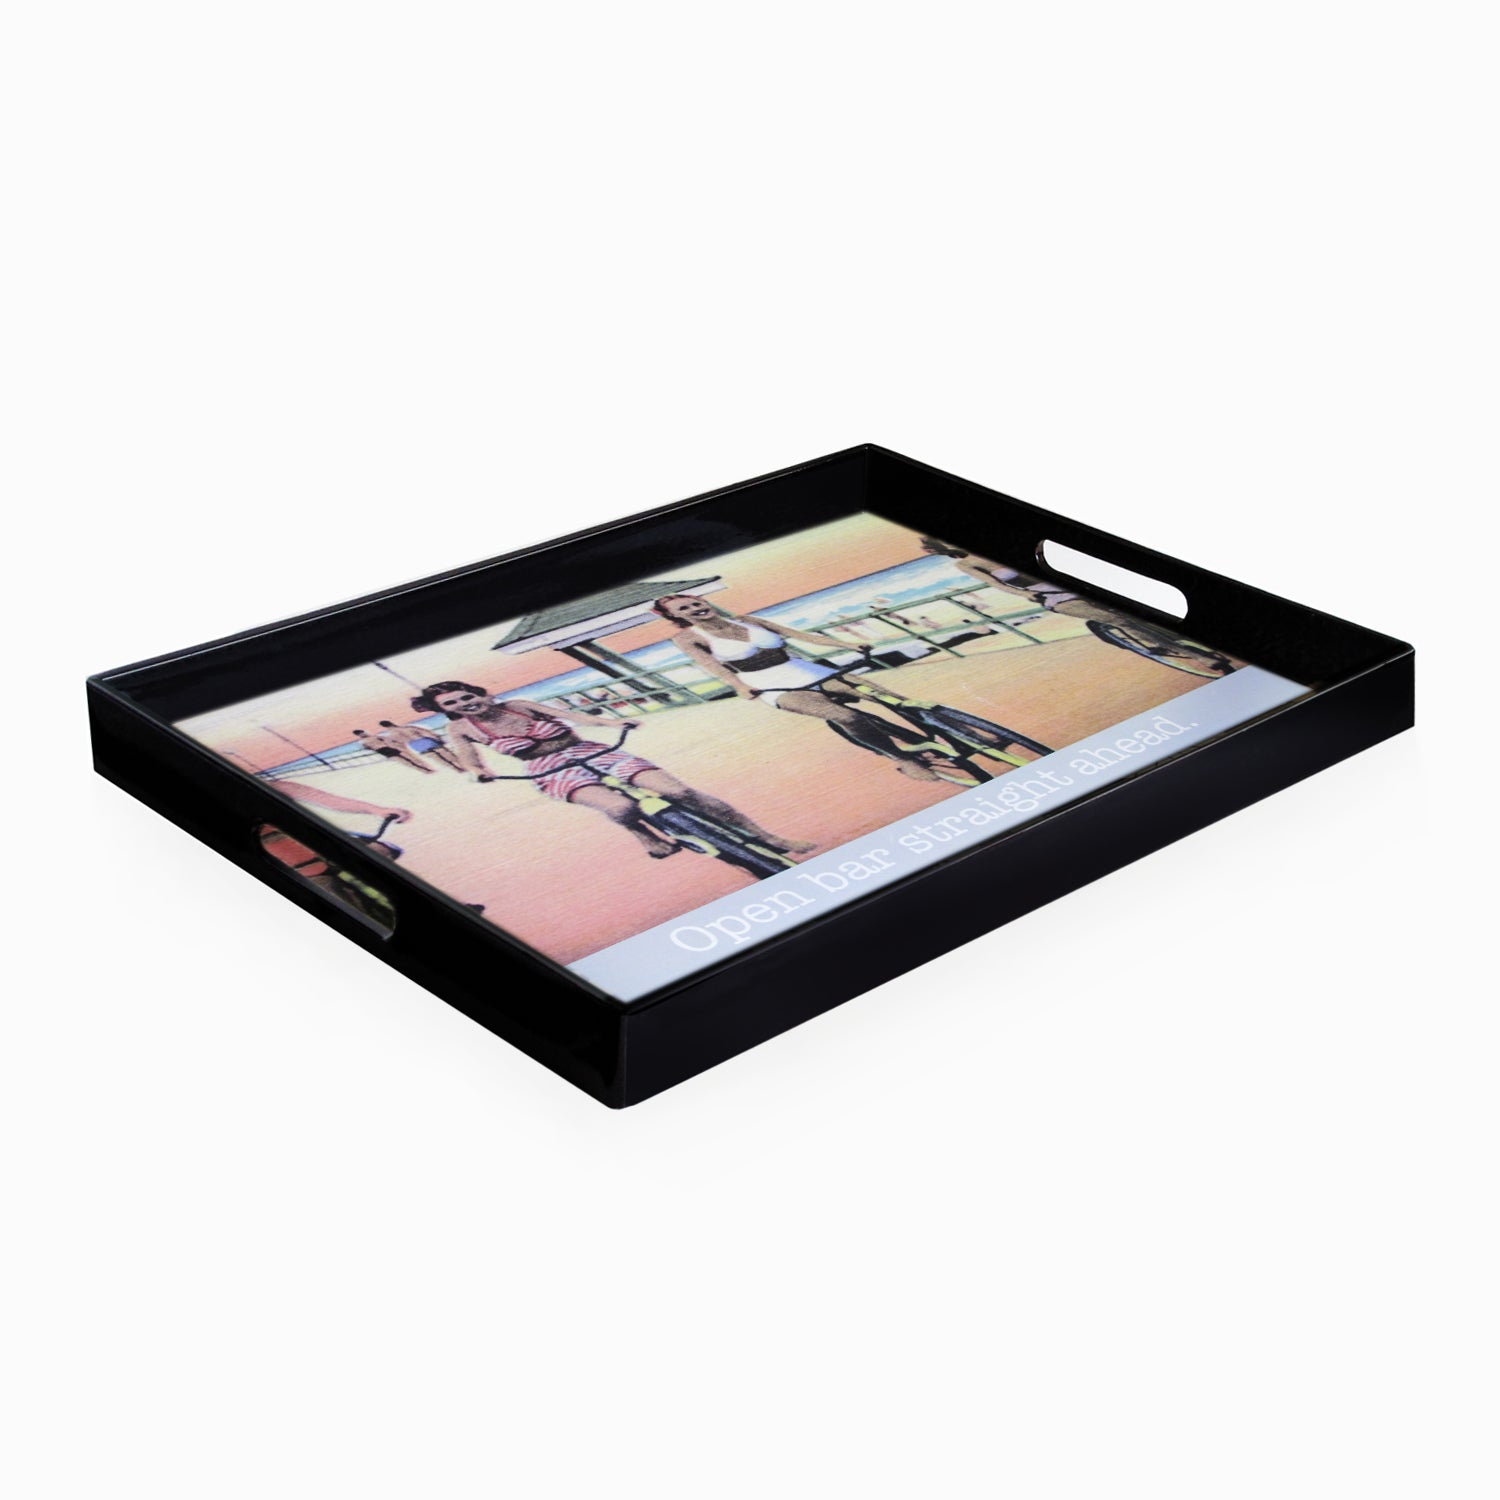 Accents by Jay Open Bar Serving Tray with Handles